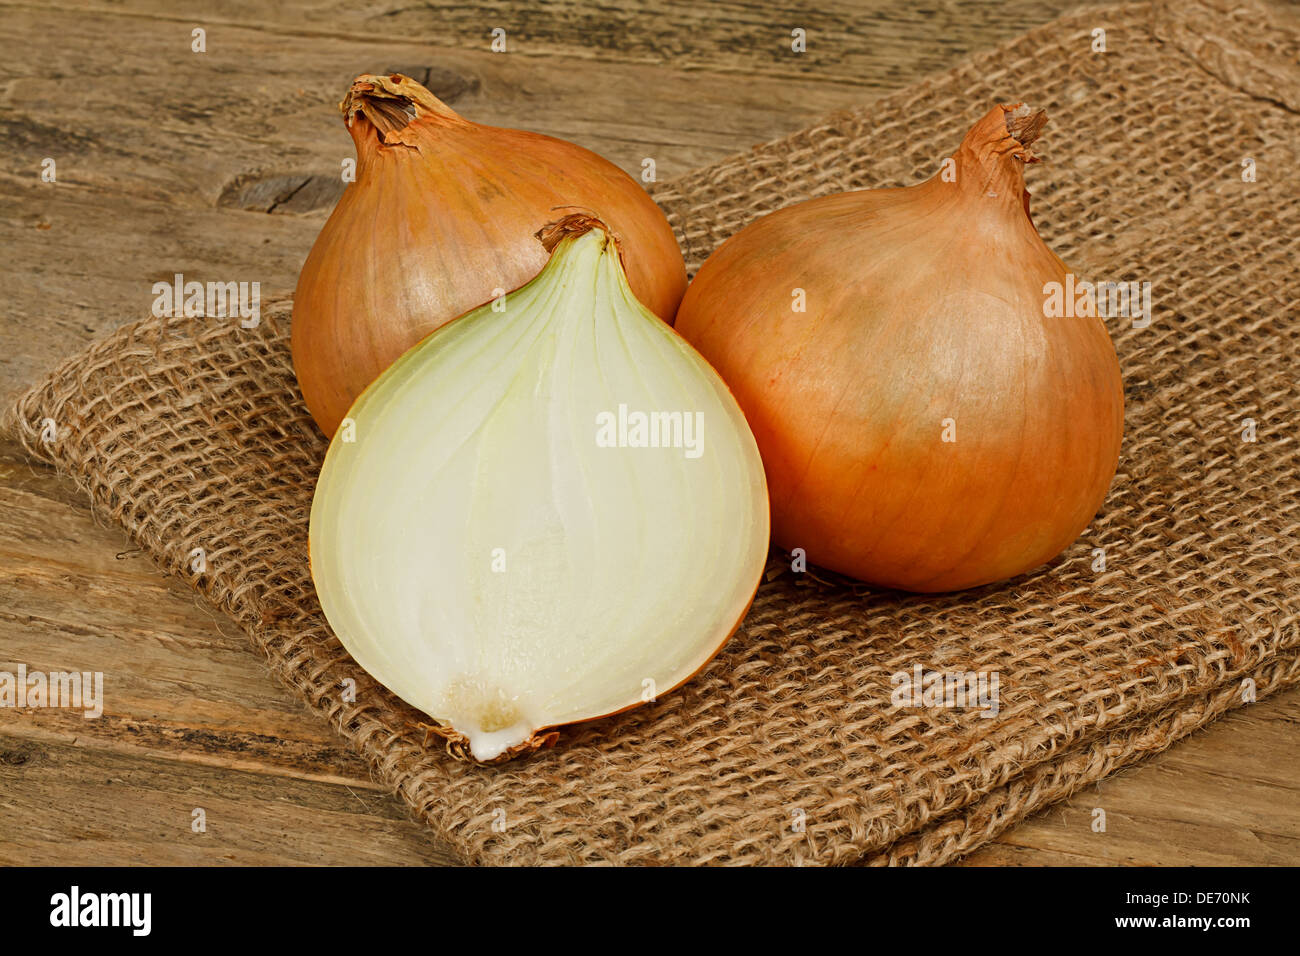 fresh onions a common vegetable in a traditional rustic setting - Stock Image